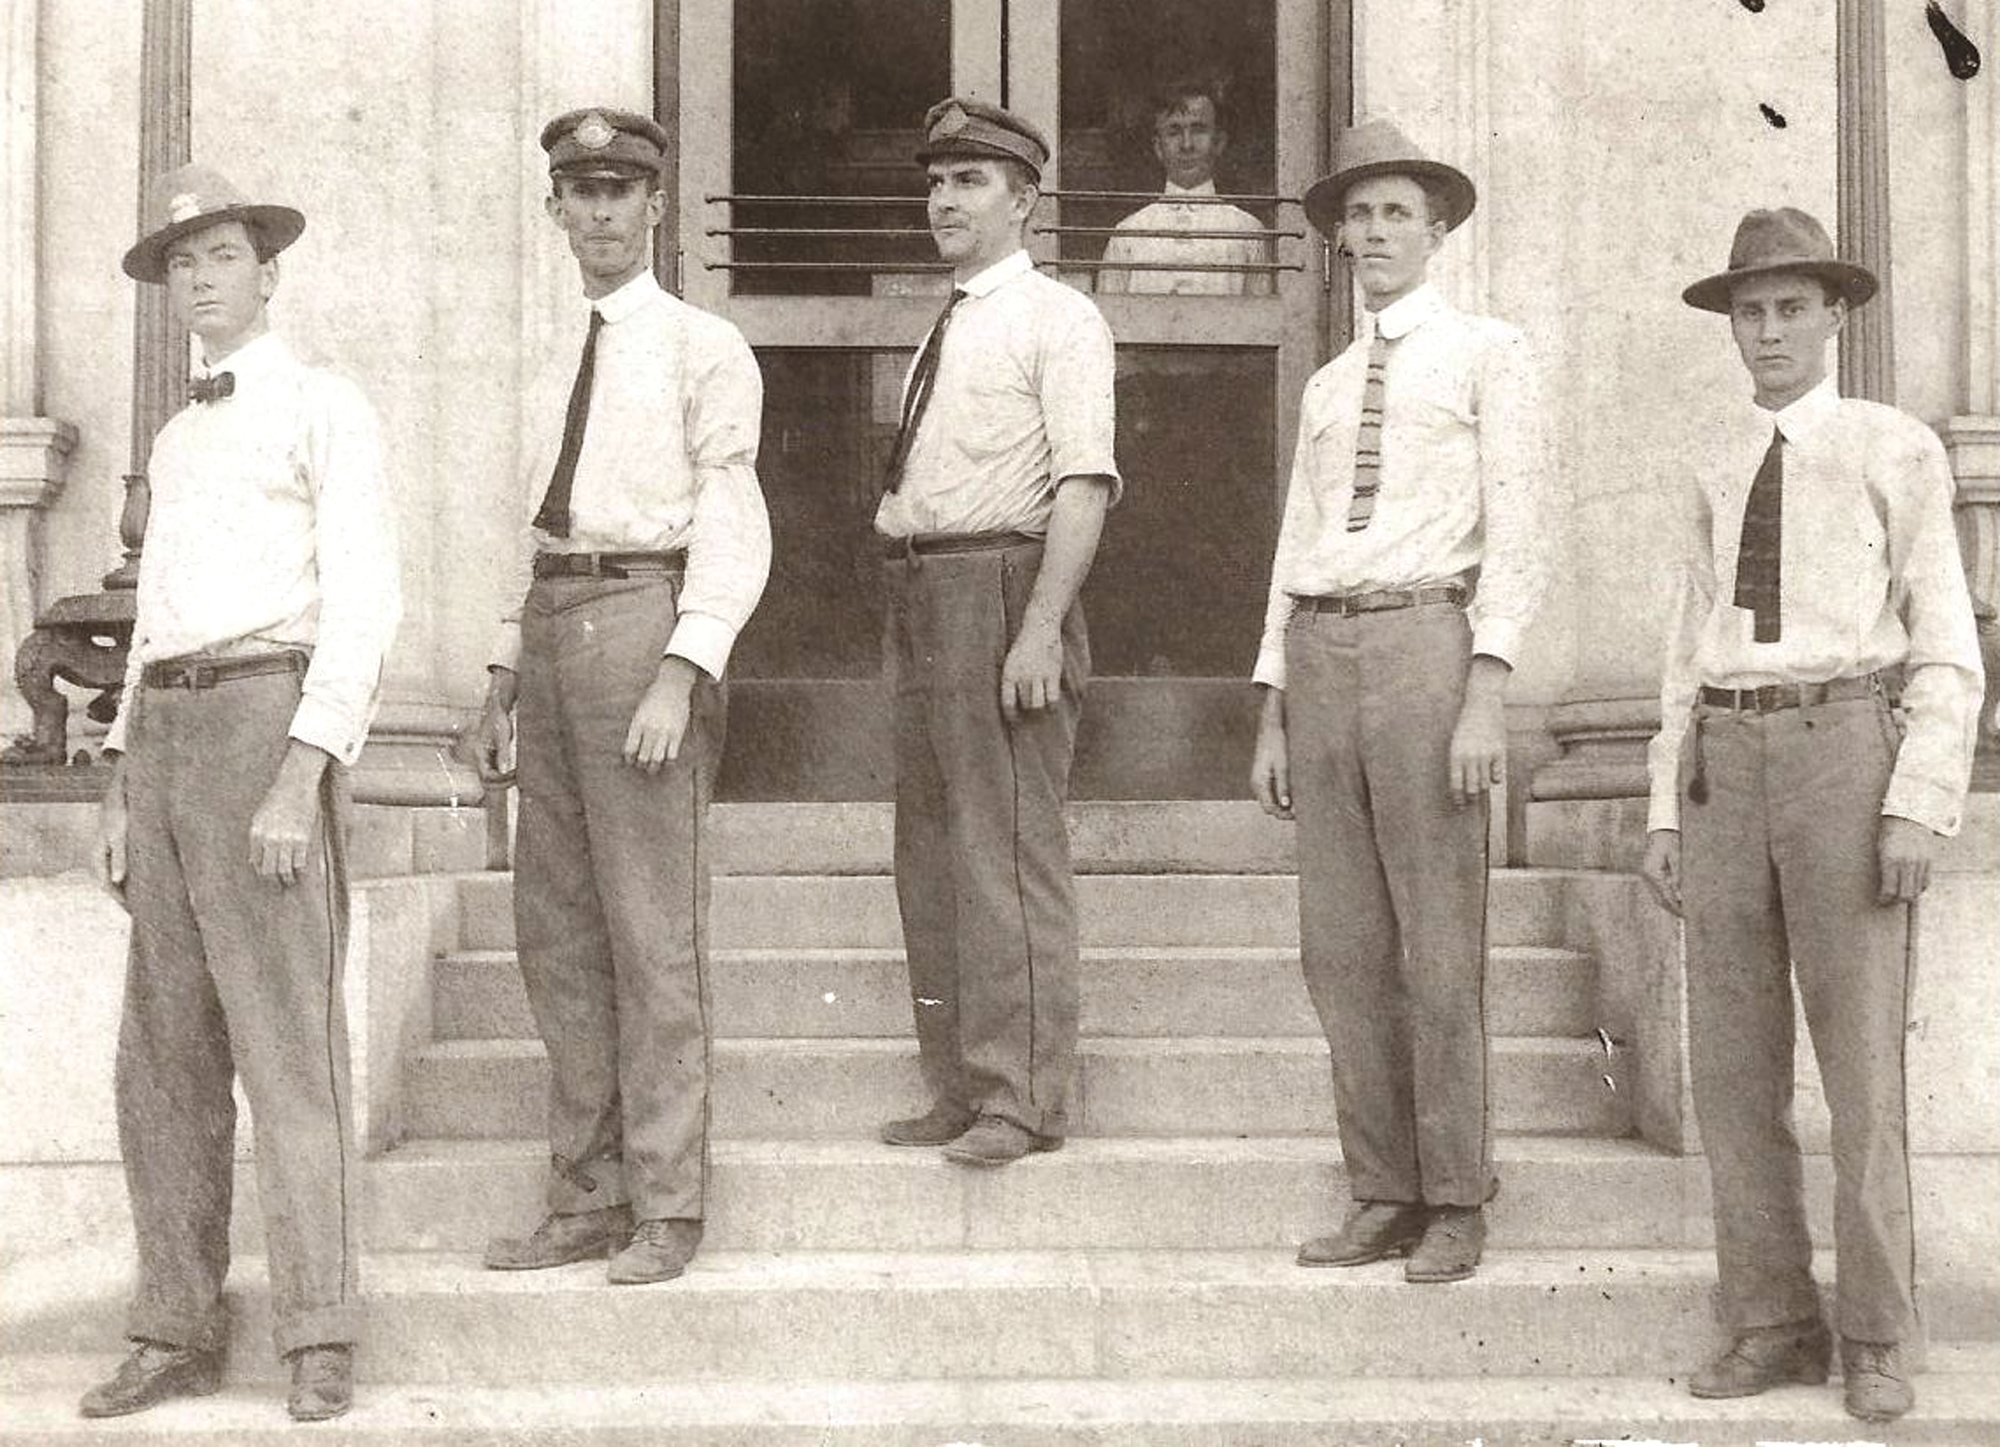 Sumter post office employees stand in front of one of the office's many locations through the years.